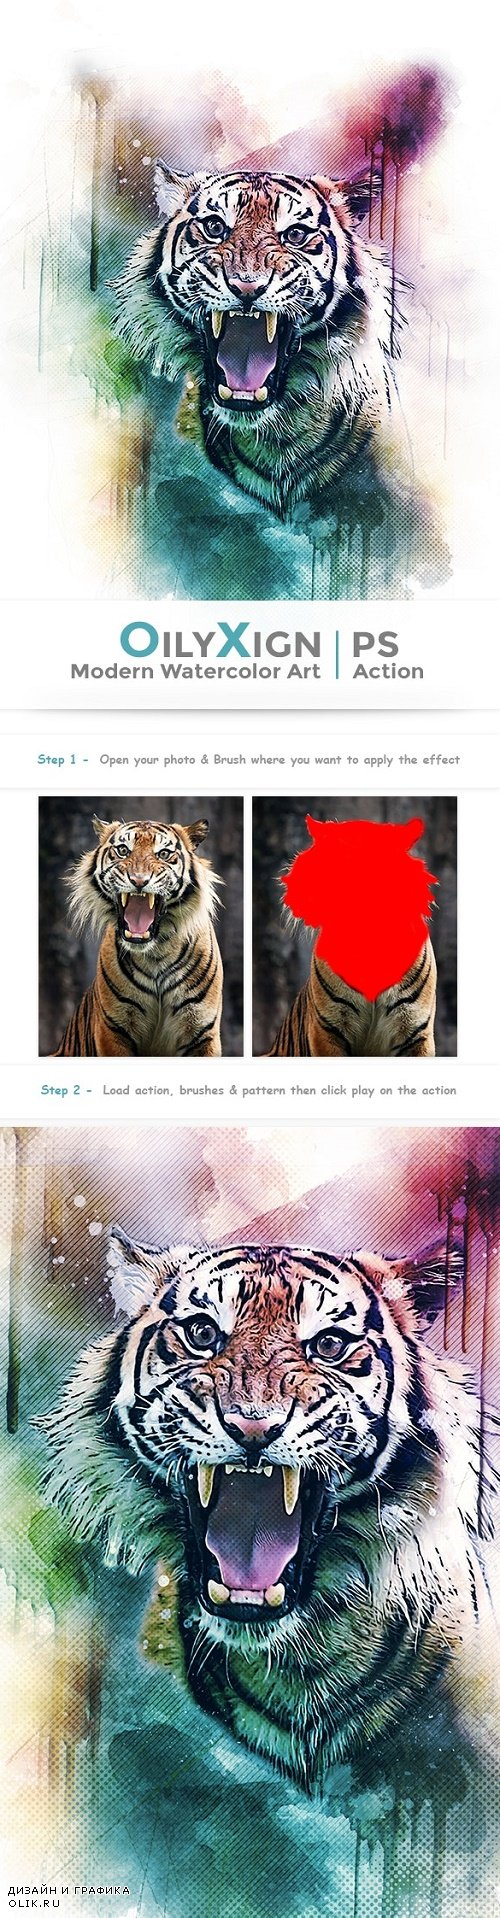 OilyXign - Modern Watercolor Art | PS Action - 22561224